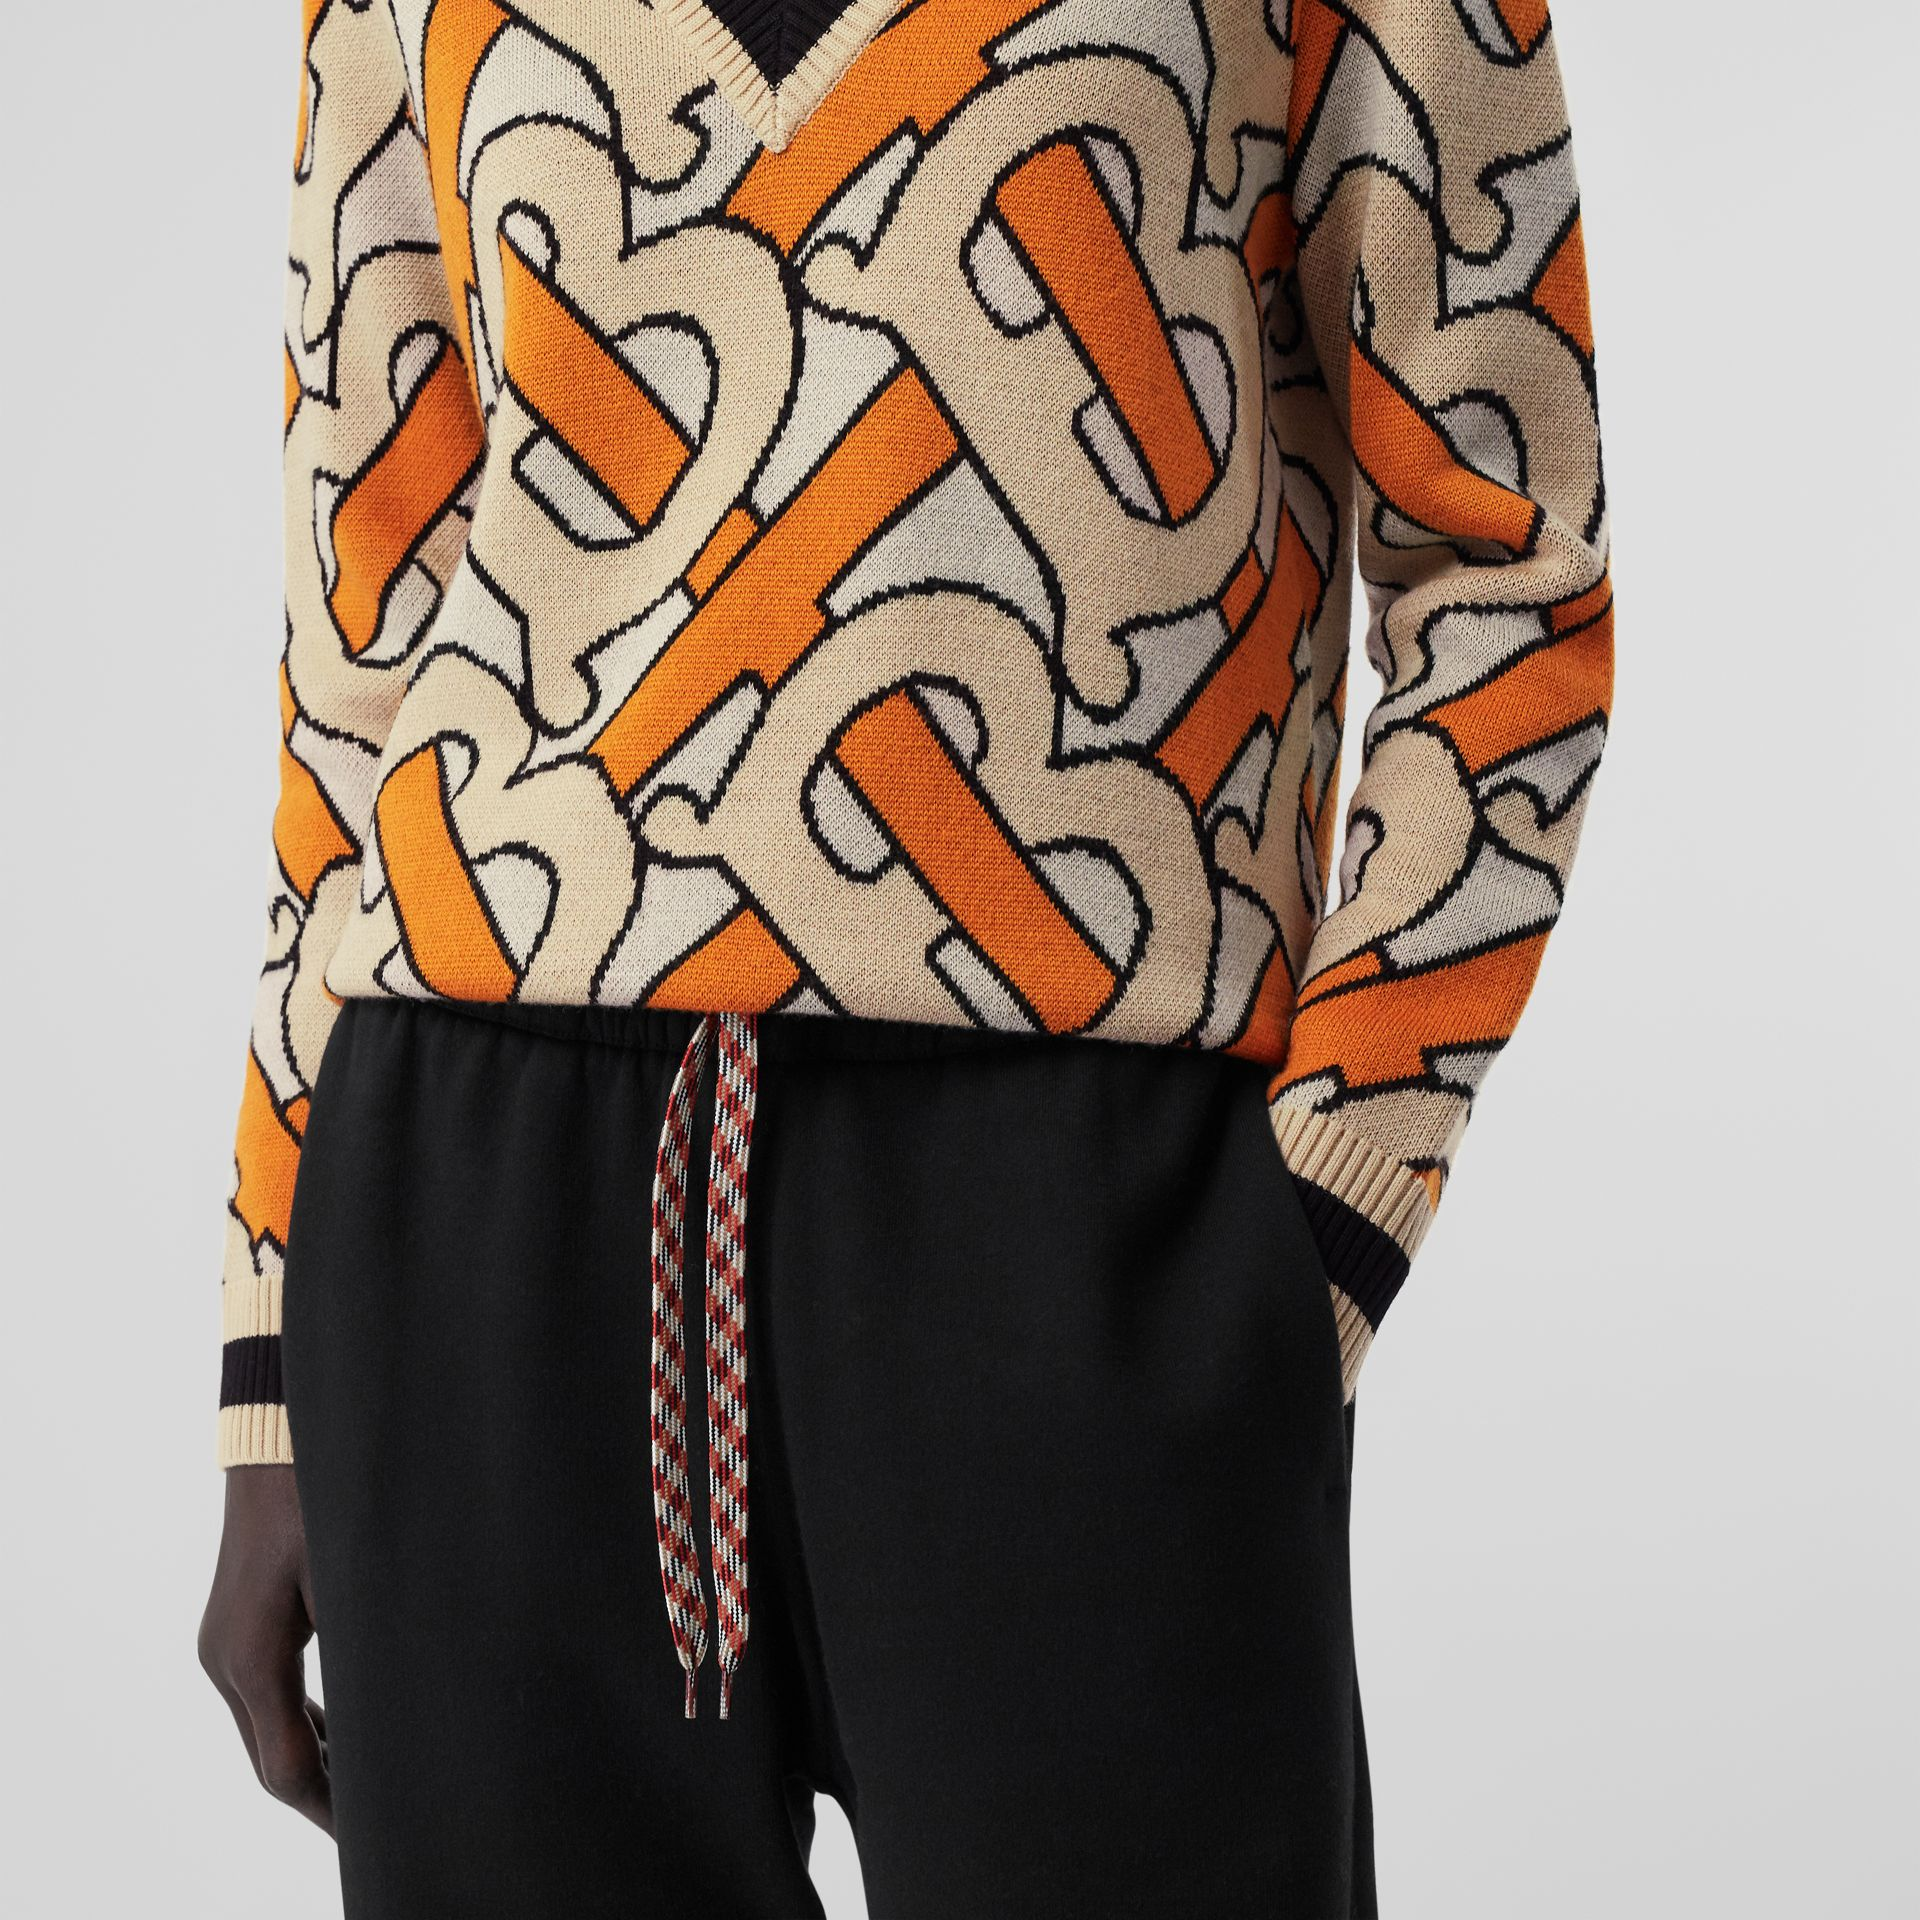 Monogram Intarsia Wool V-neck Sweater in Bright Orange - Women | Burberry United Kingdom - gallery image 4